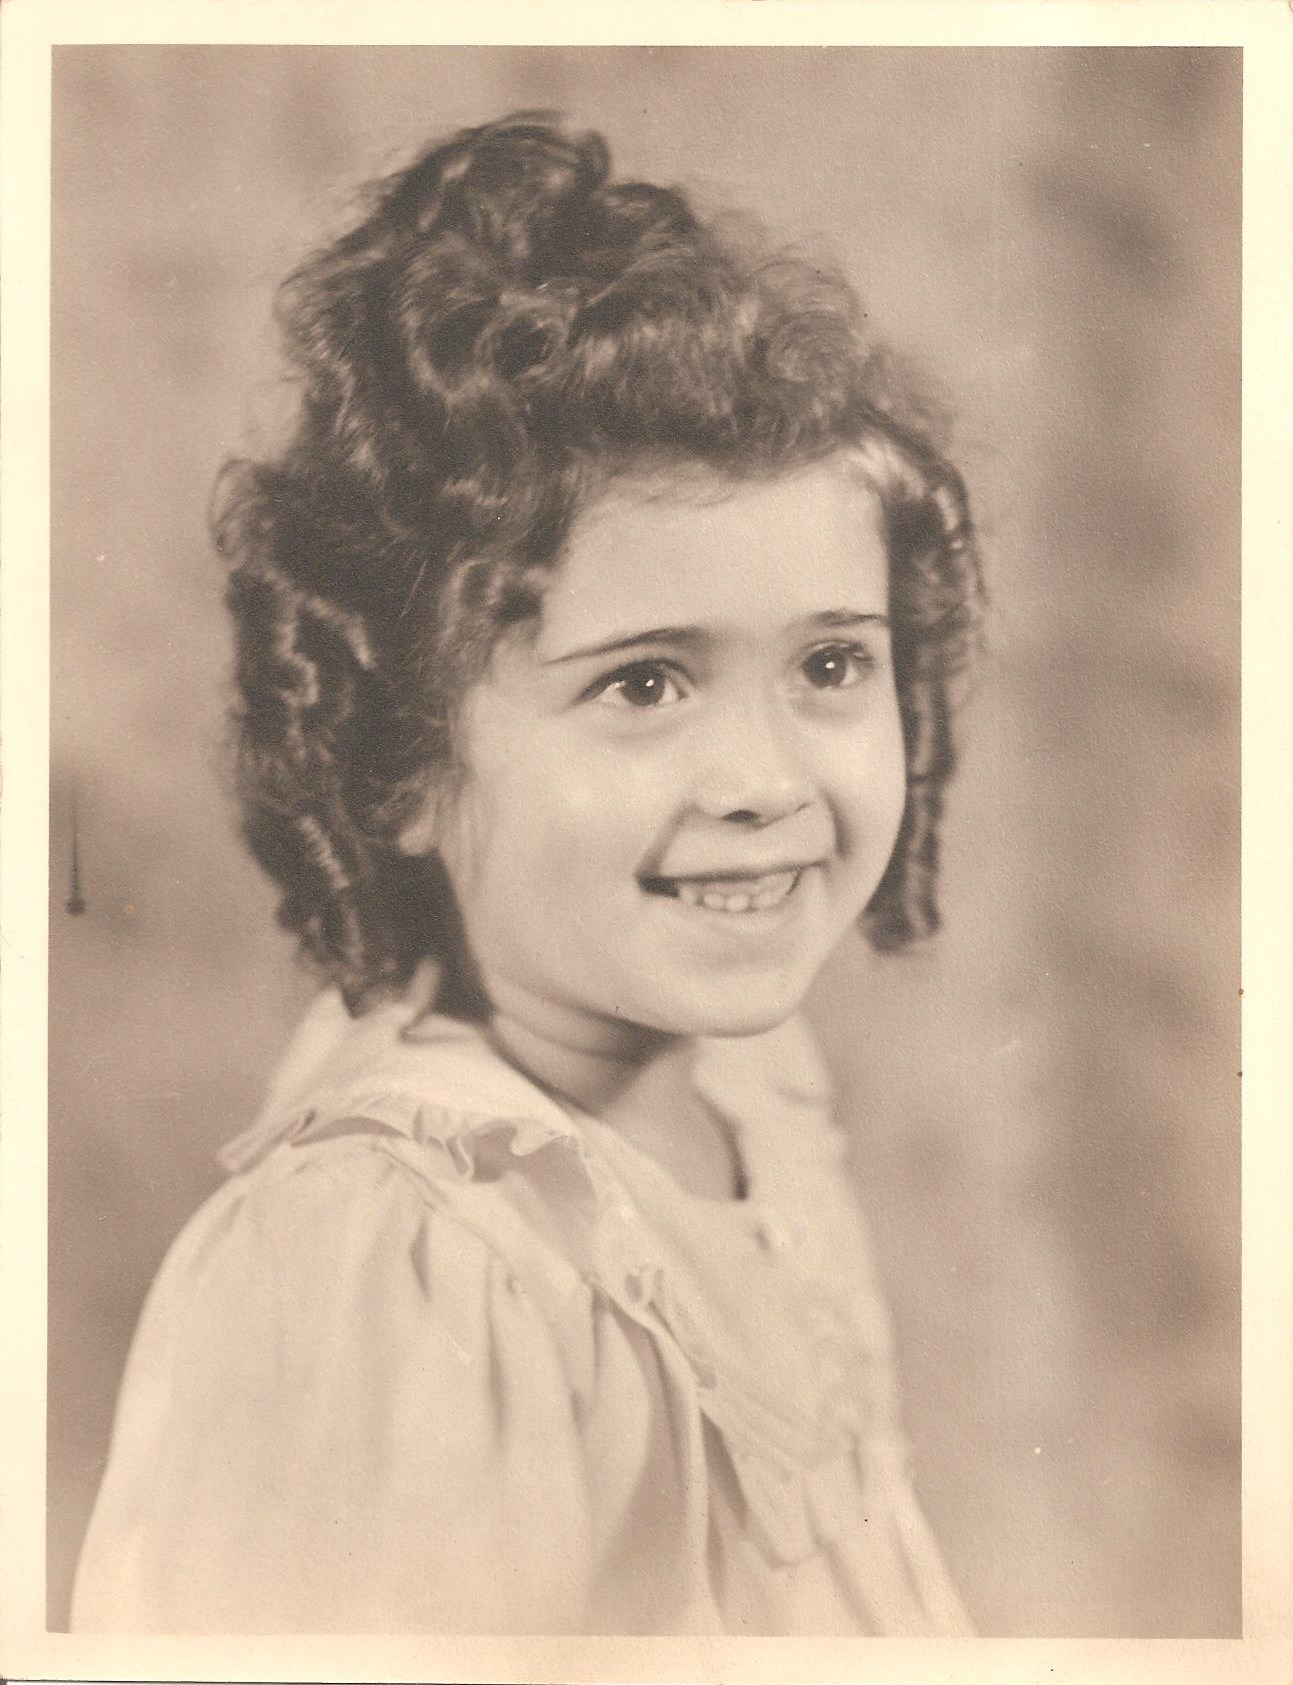 Rosemary Capello as little girl!